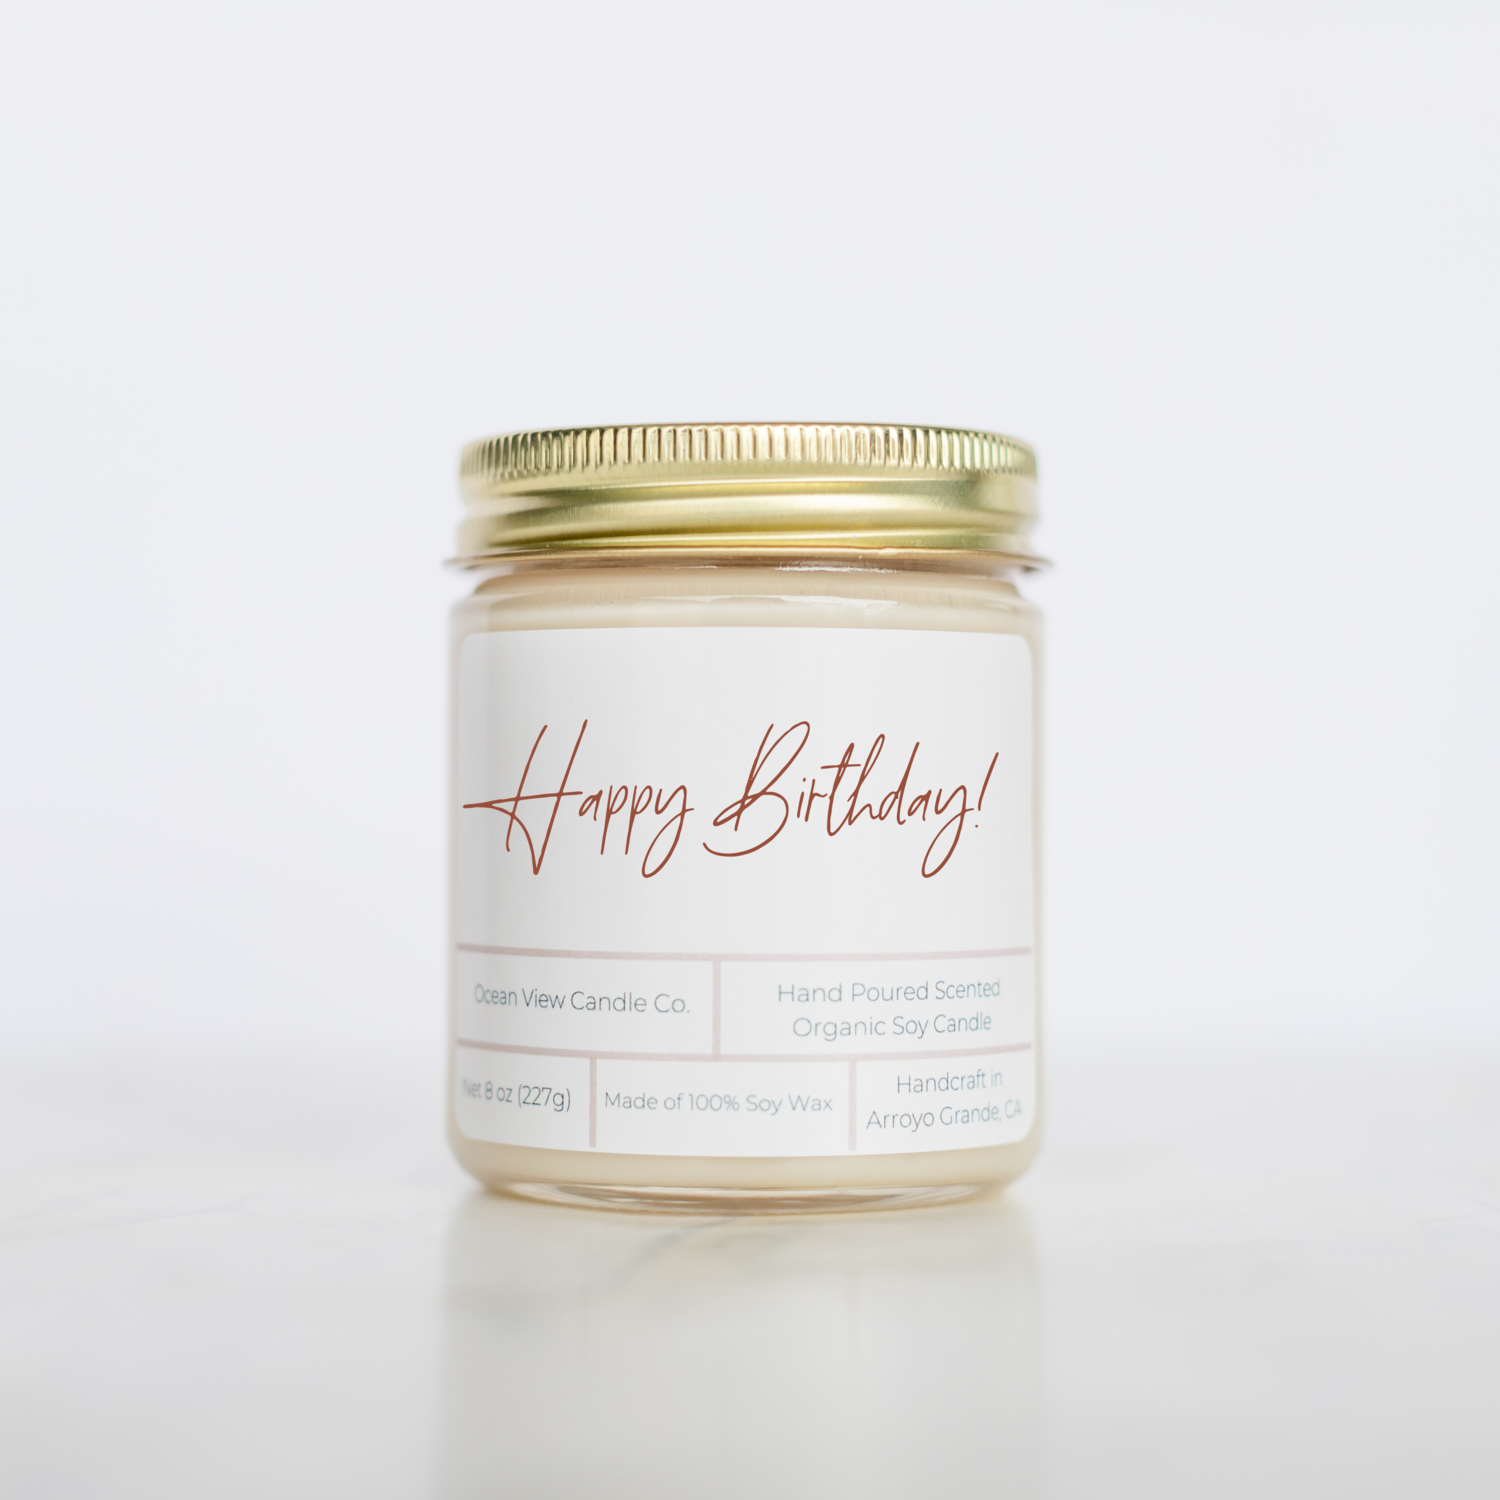 Happy Birthday Soy Wax Candle